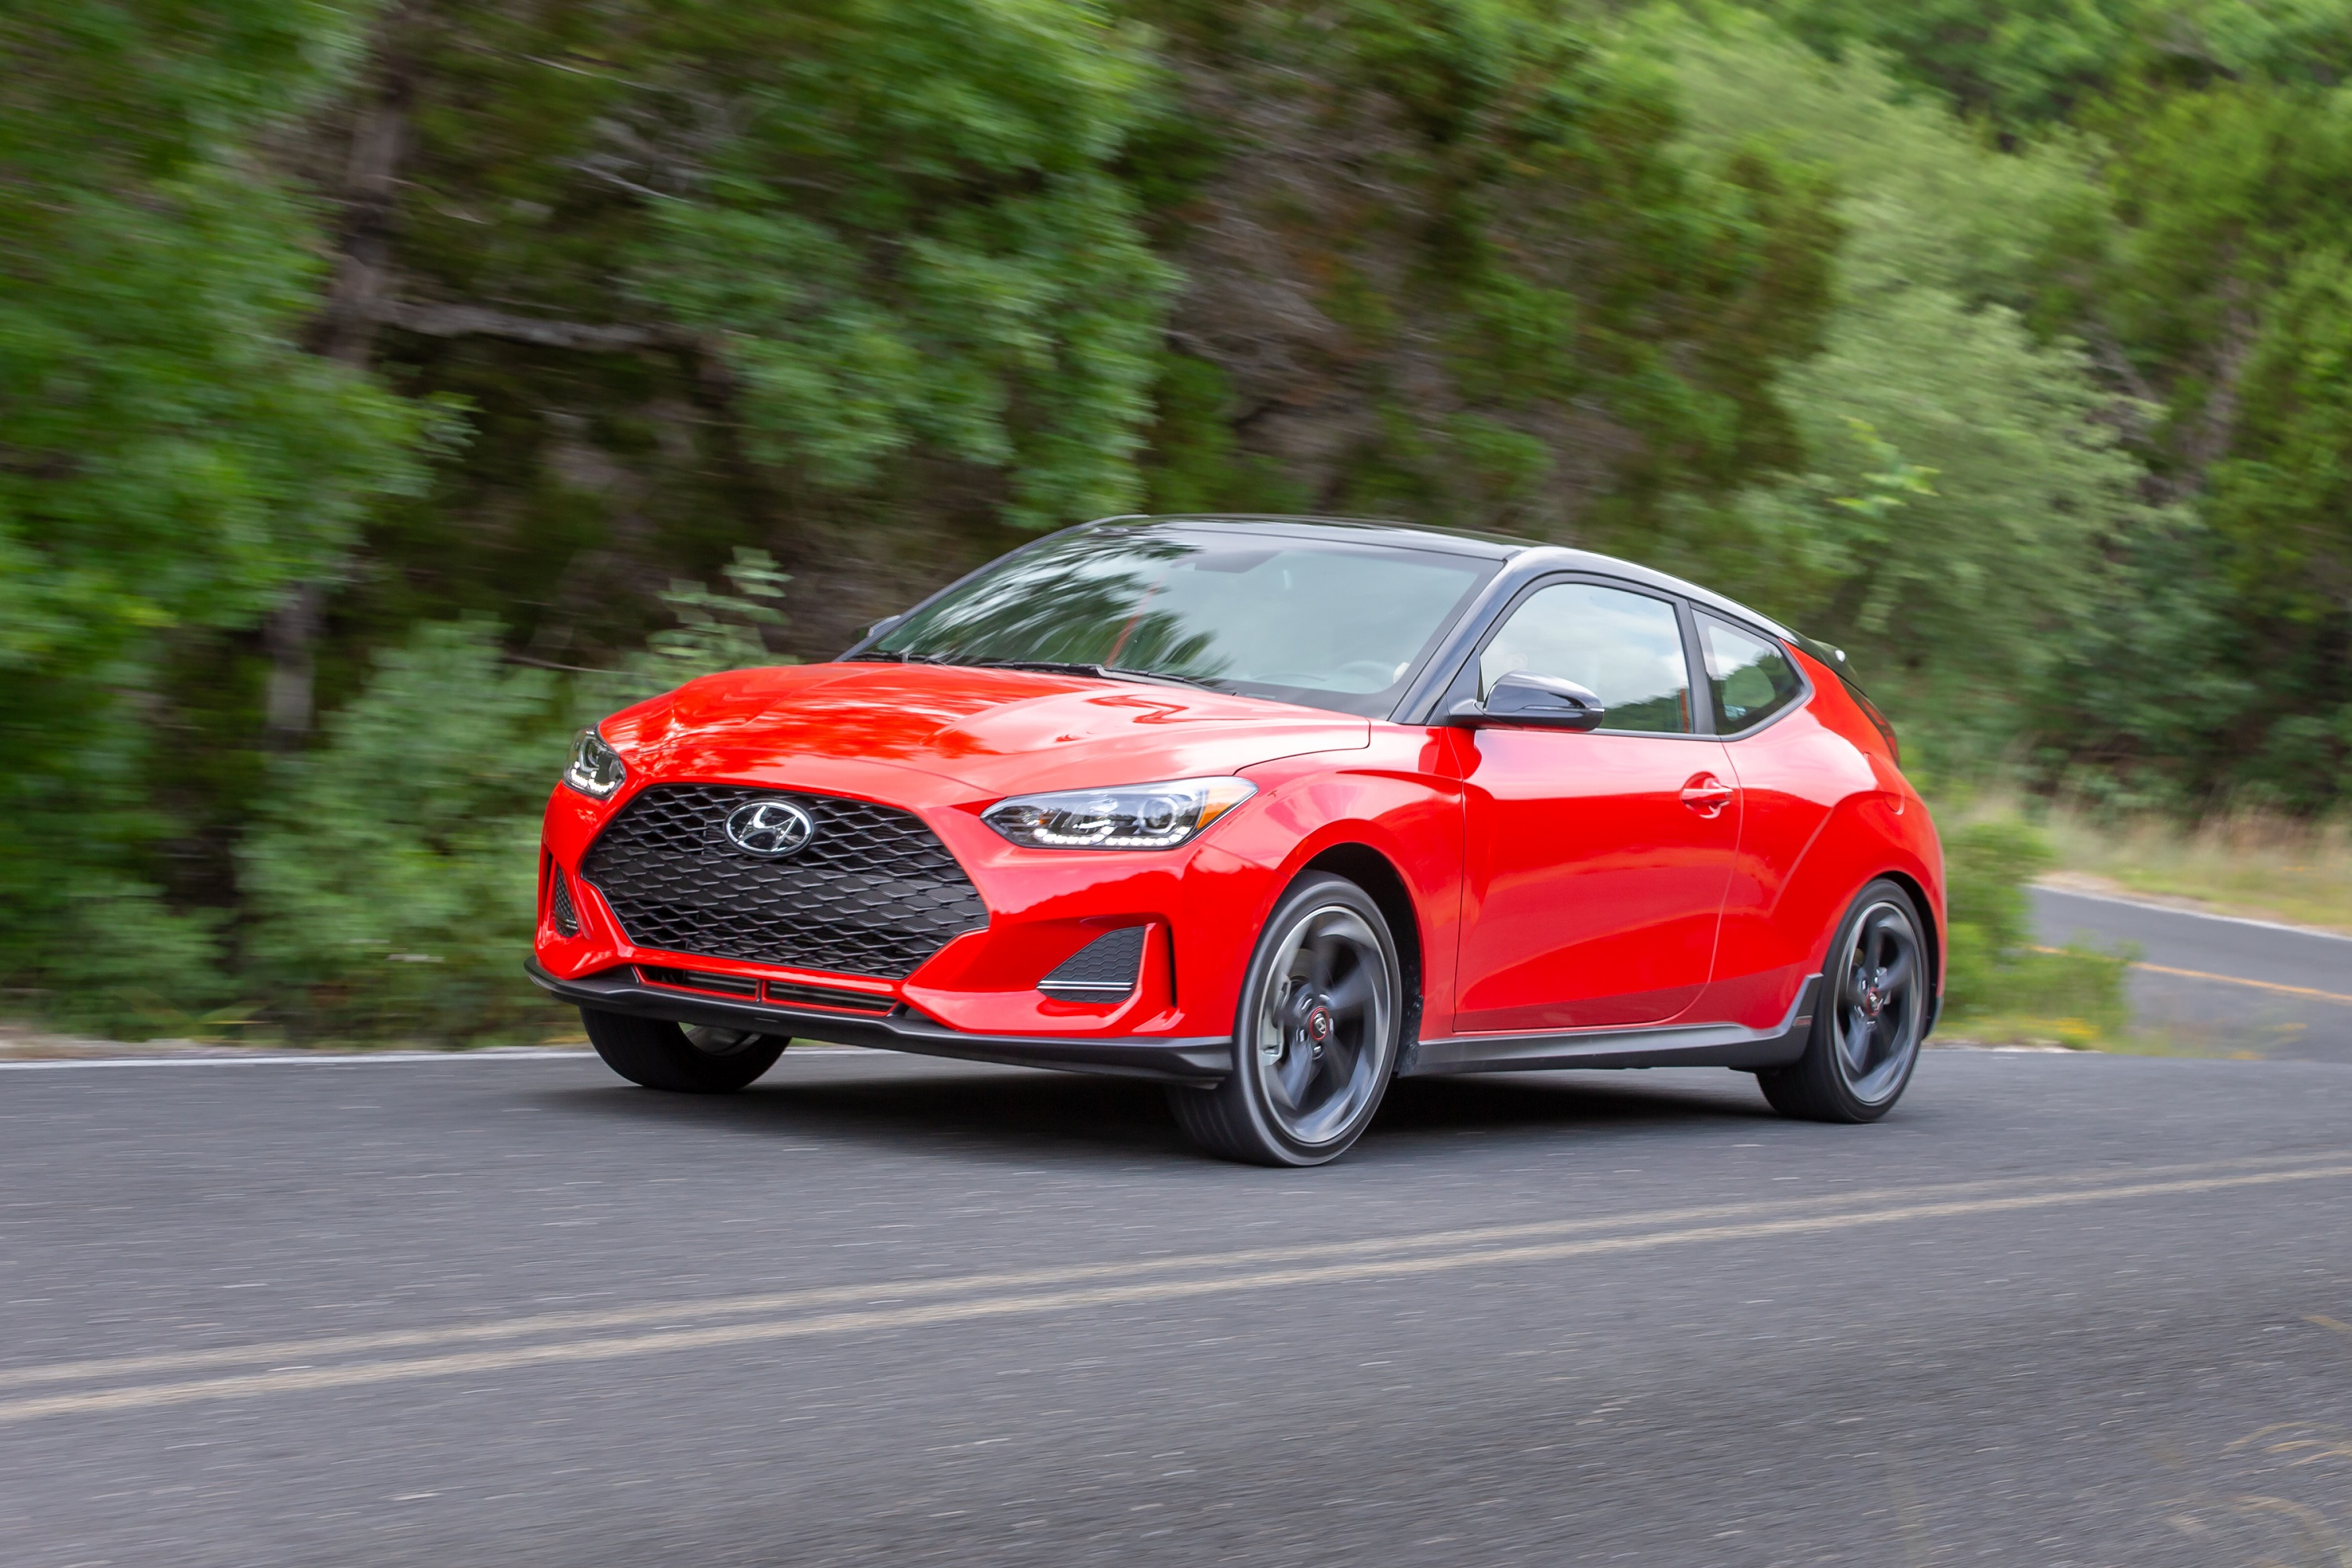 Manufacturer photo: The Veloster merges the design appeal of a sport coupe with the versatility of an additional passenger side rear door in an asymmetrical two-plus-one configuration for easier rear-seat access